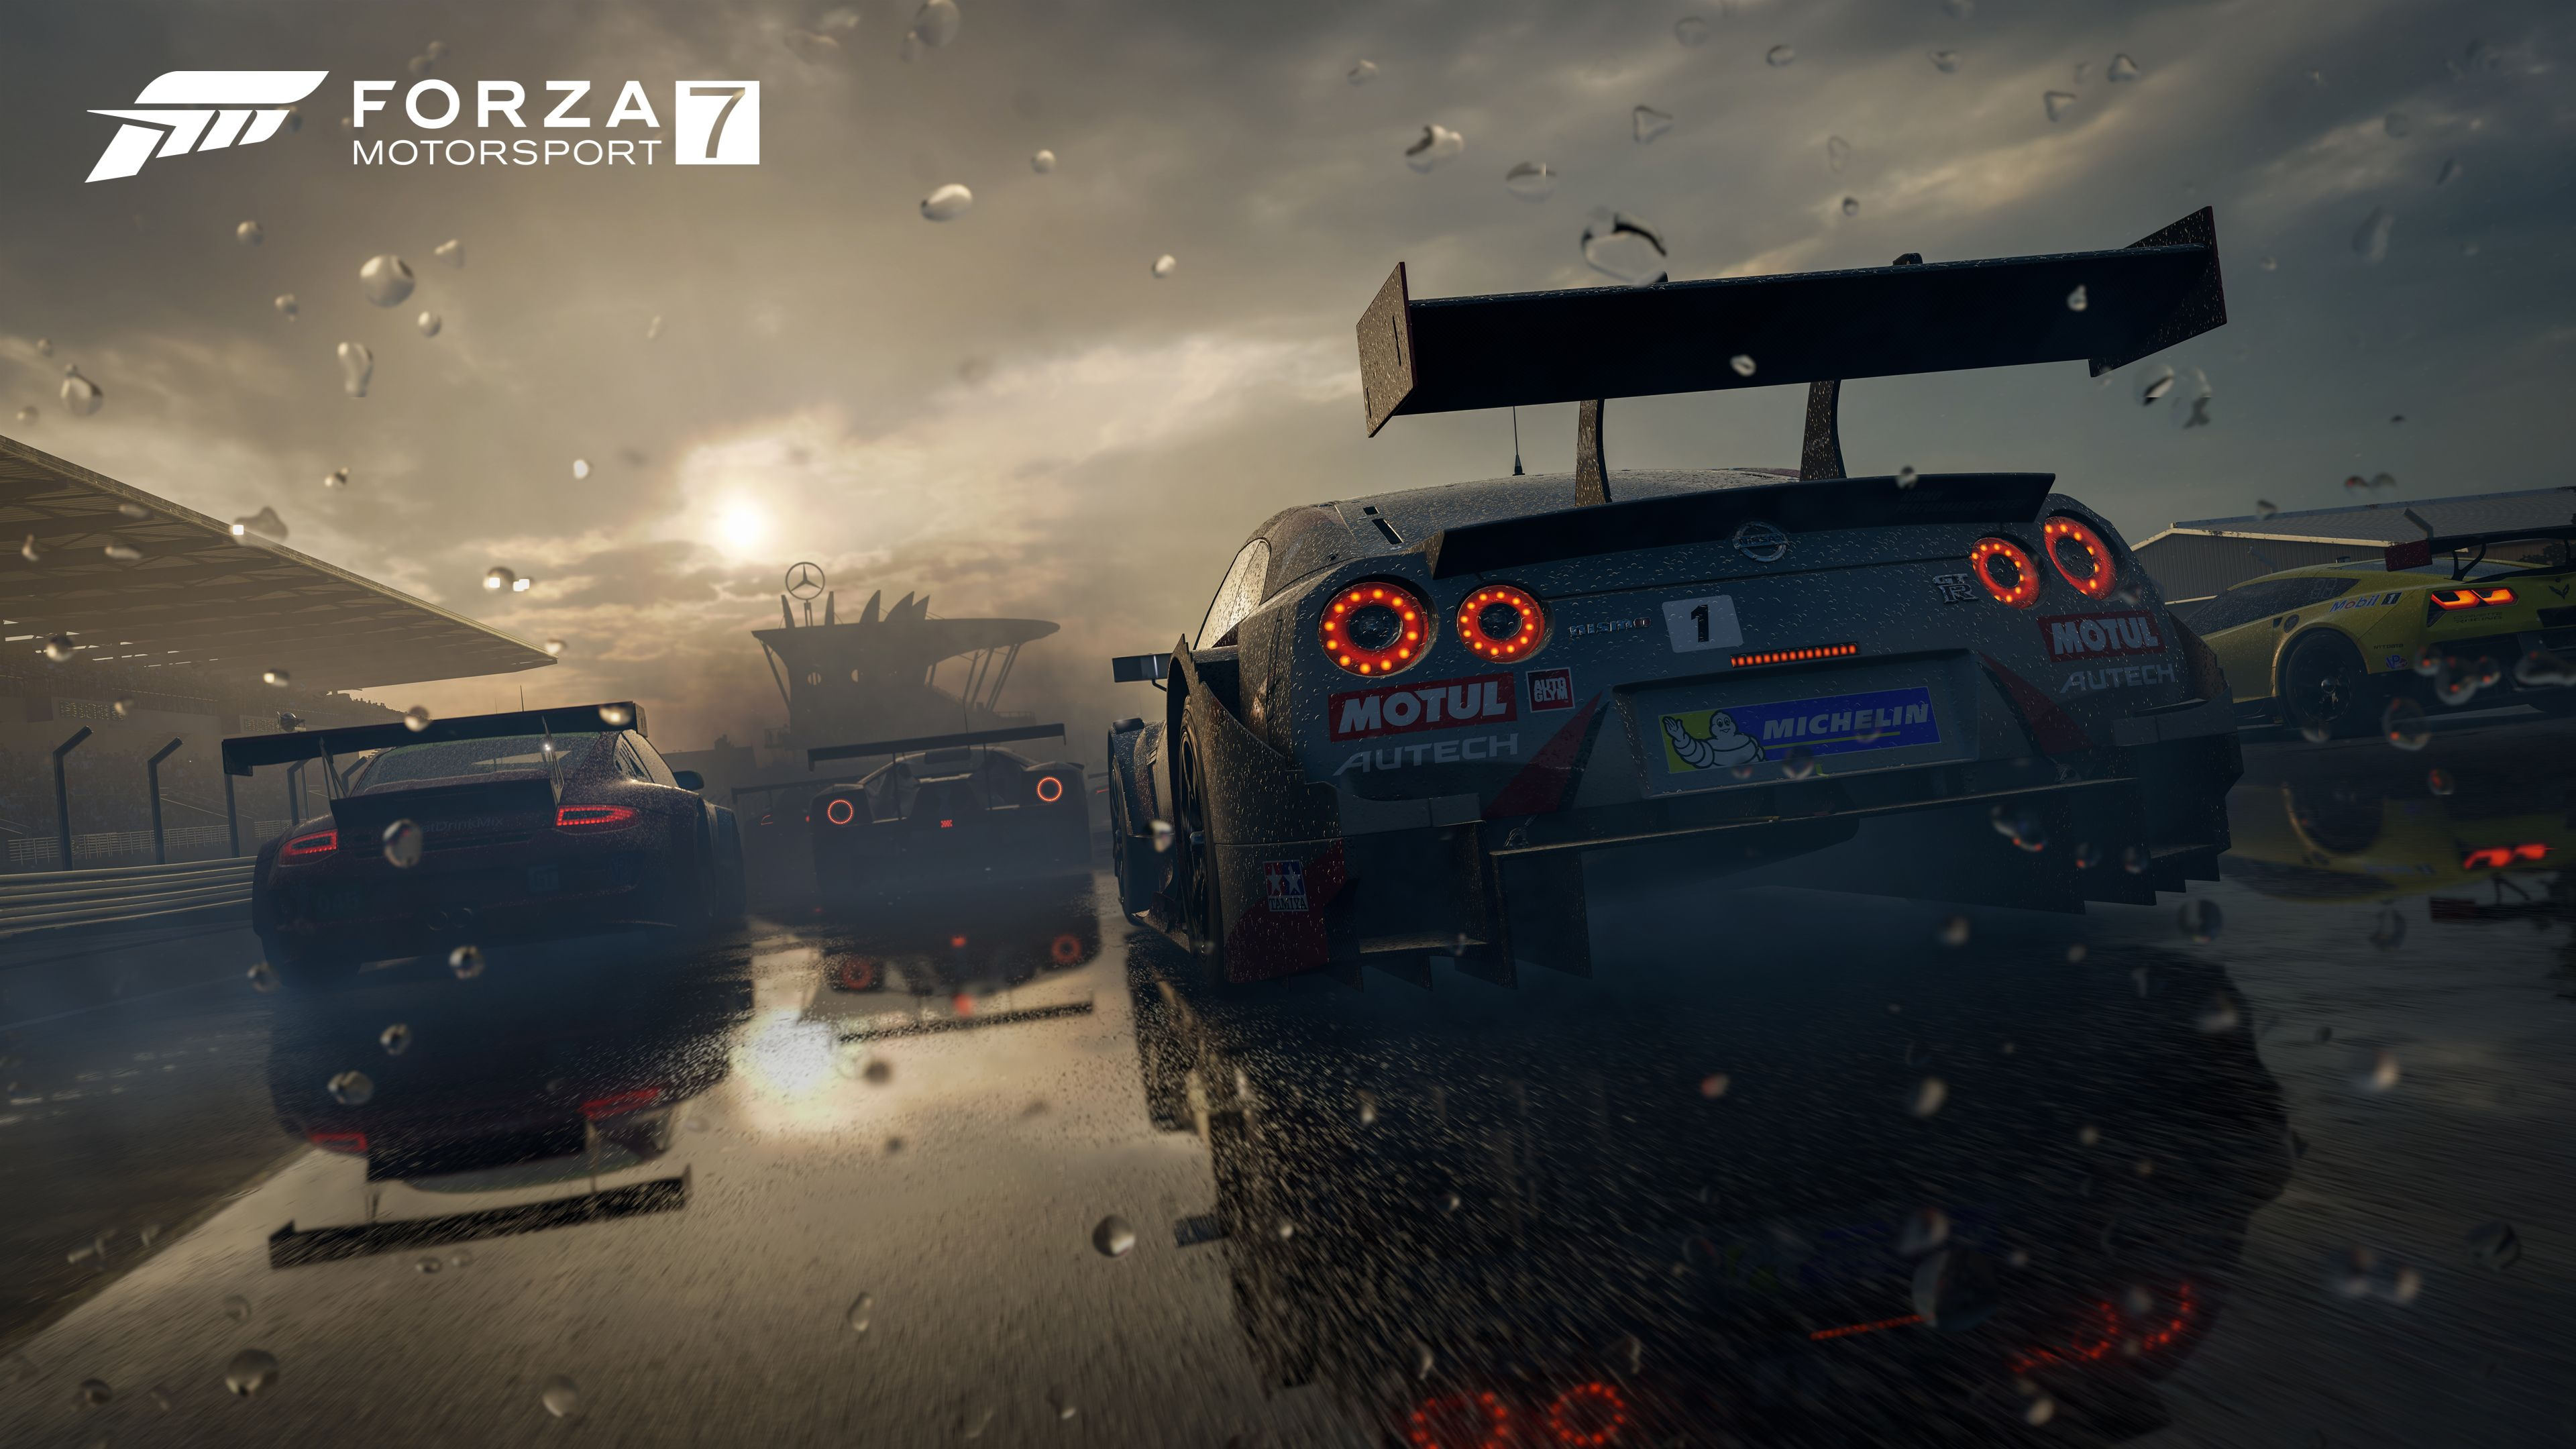 Forza Motorsport 7 Guide Tips And Tricks Unlimited Money Cheat Fastest Car More